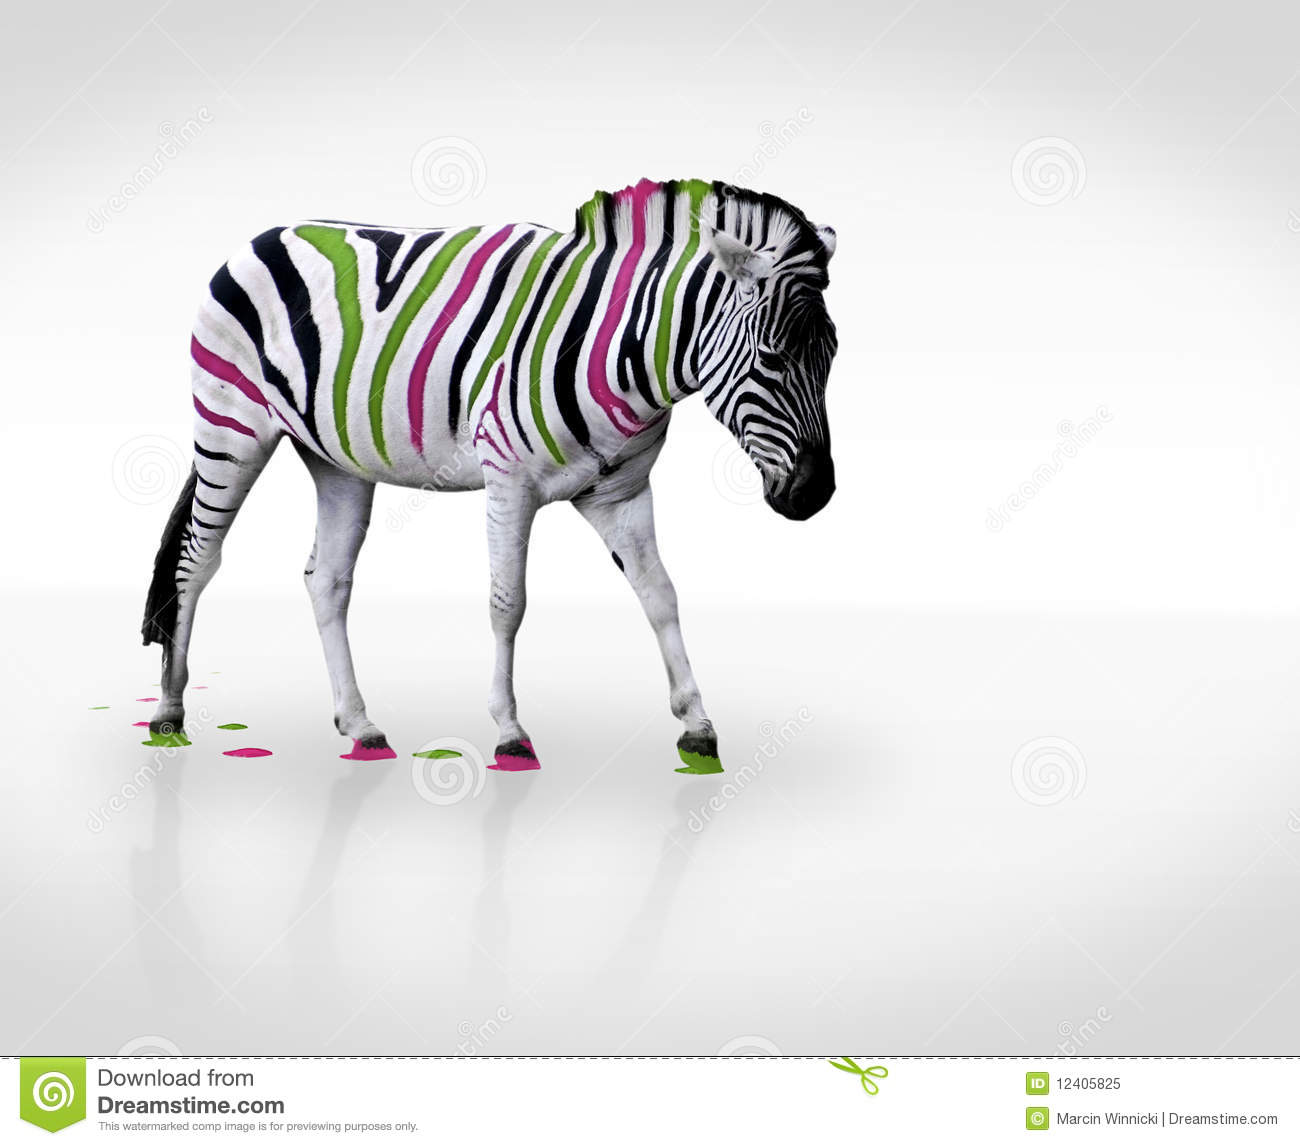 Creative Zebra Royalty Free Stock Photo Image 12405825